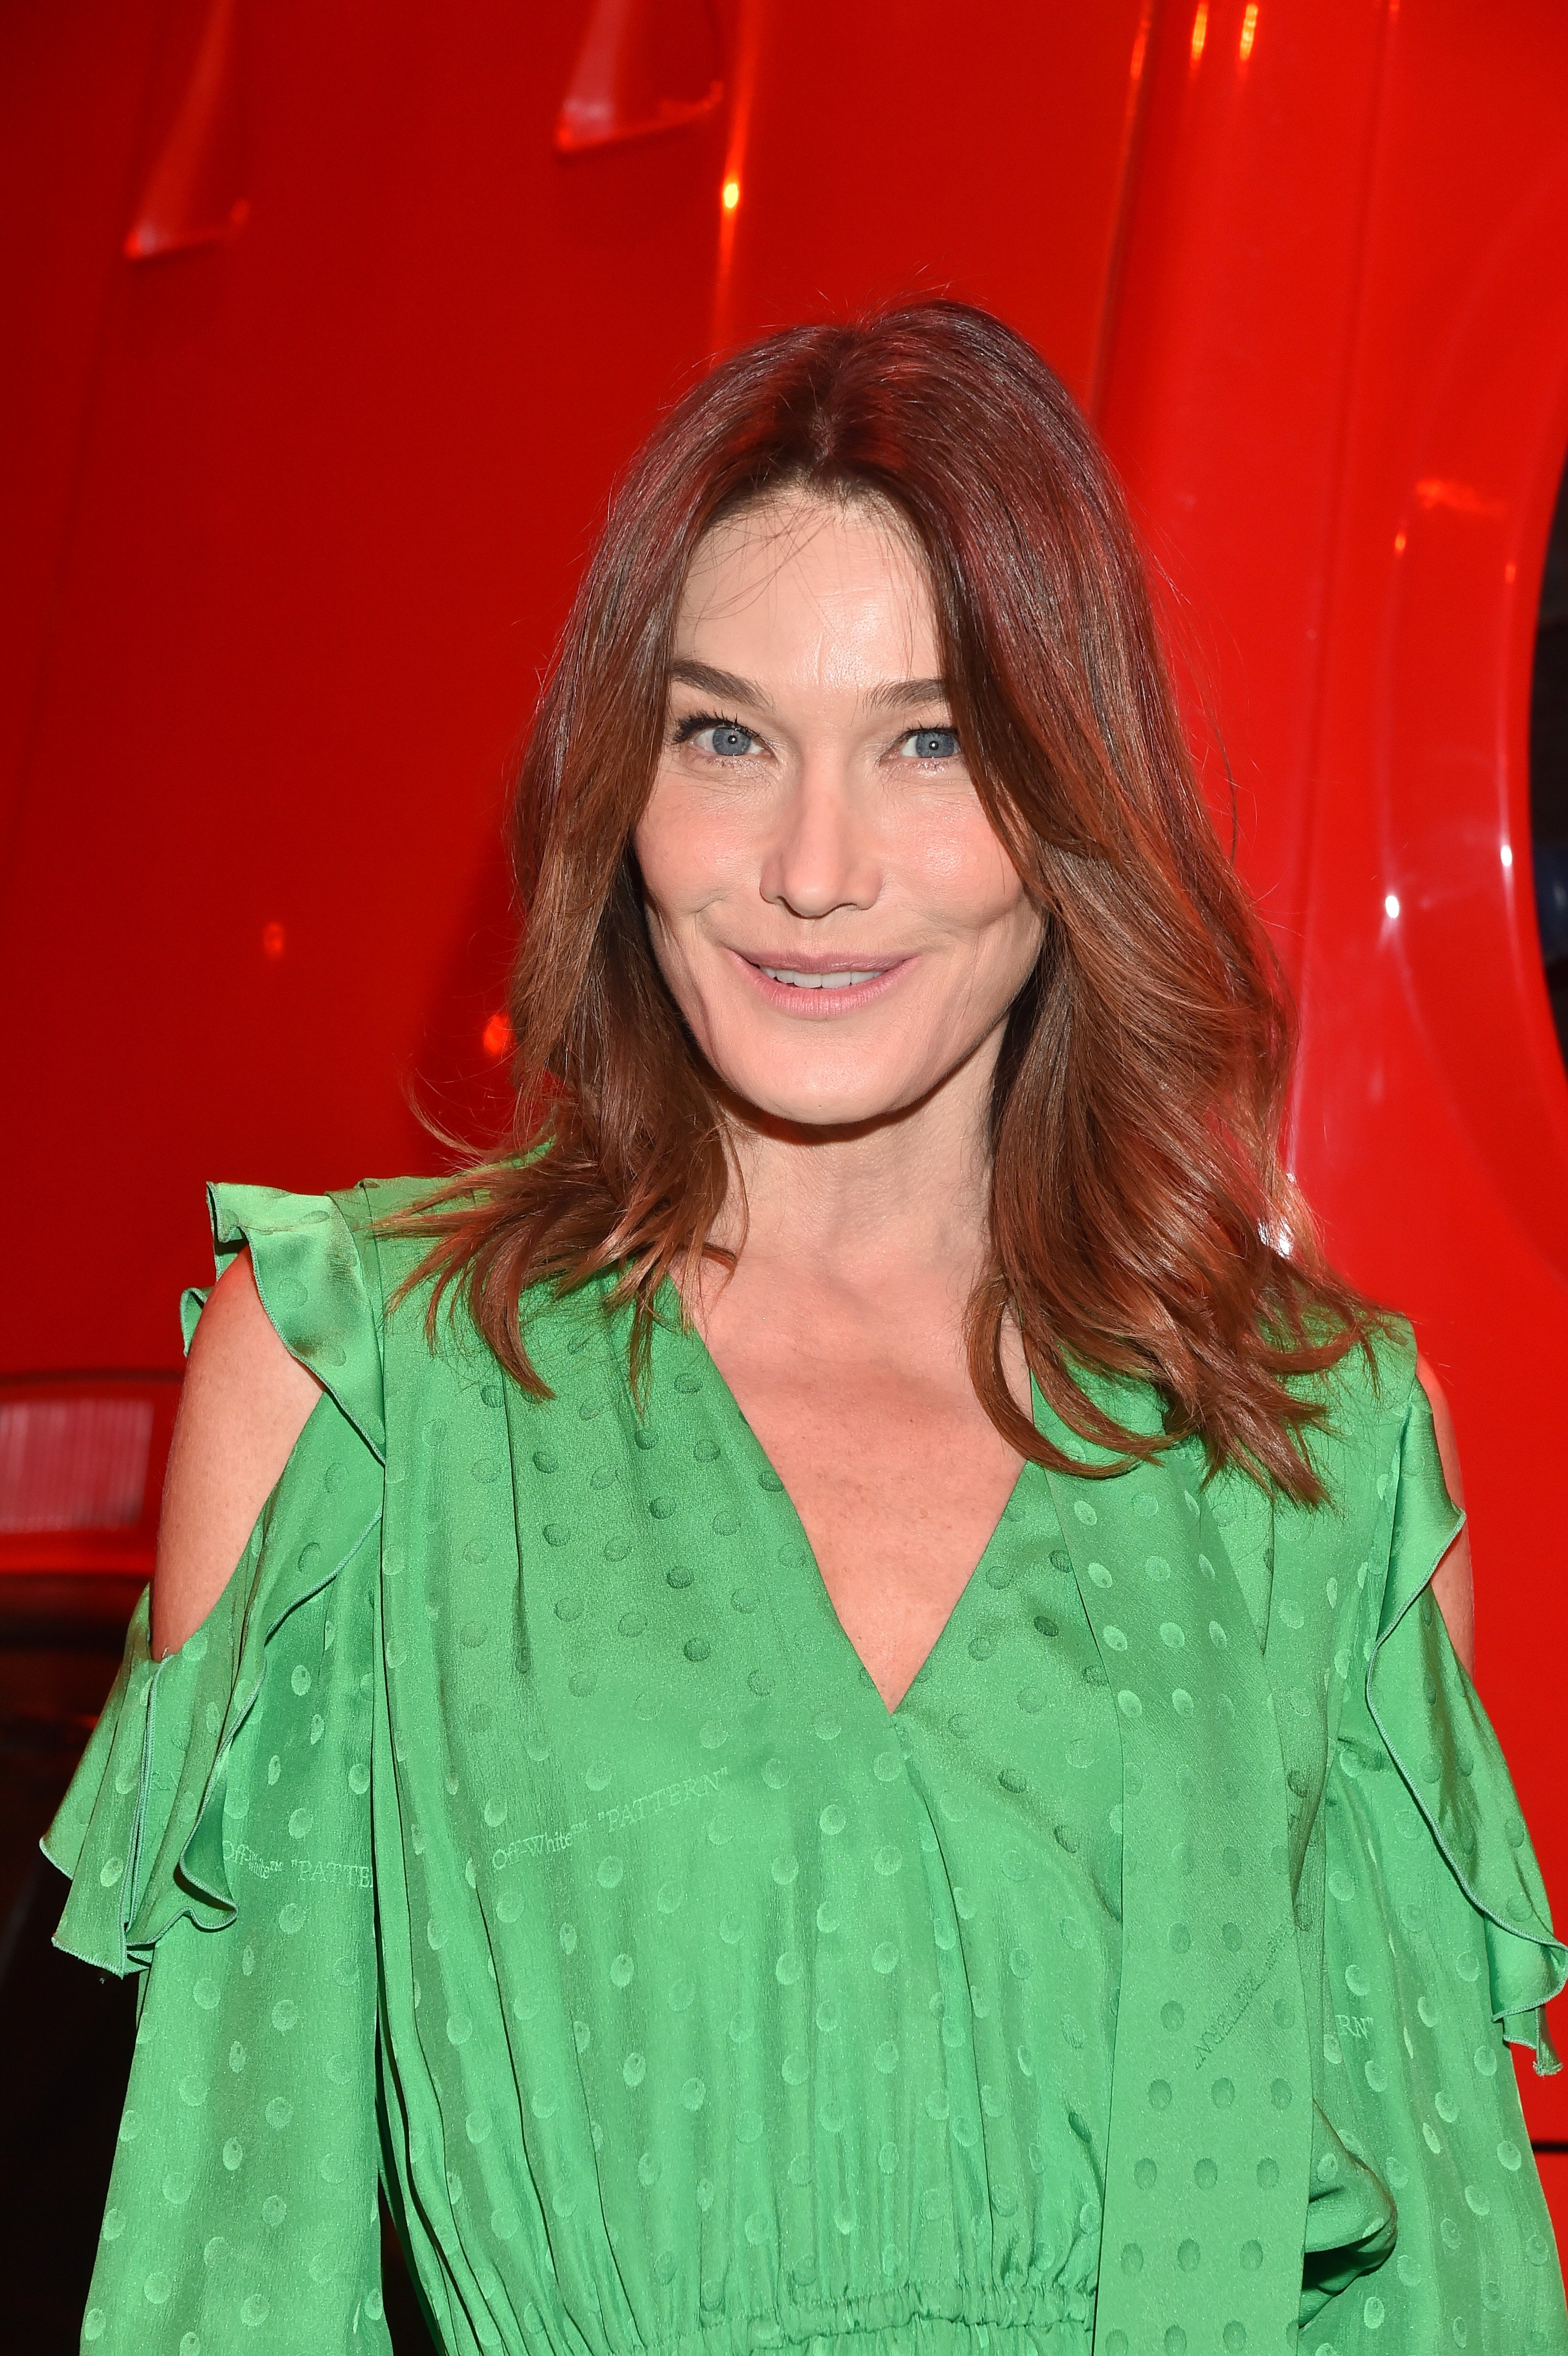 Carla Bruni attends the Off-White show at the Paris Fashion Week Womenswear Fall/Winter 2020/2021 on February 27, 2020 in Paris, France. | Photo: Getty Images